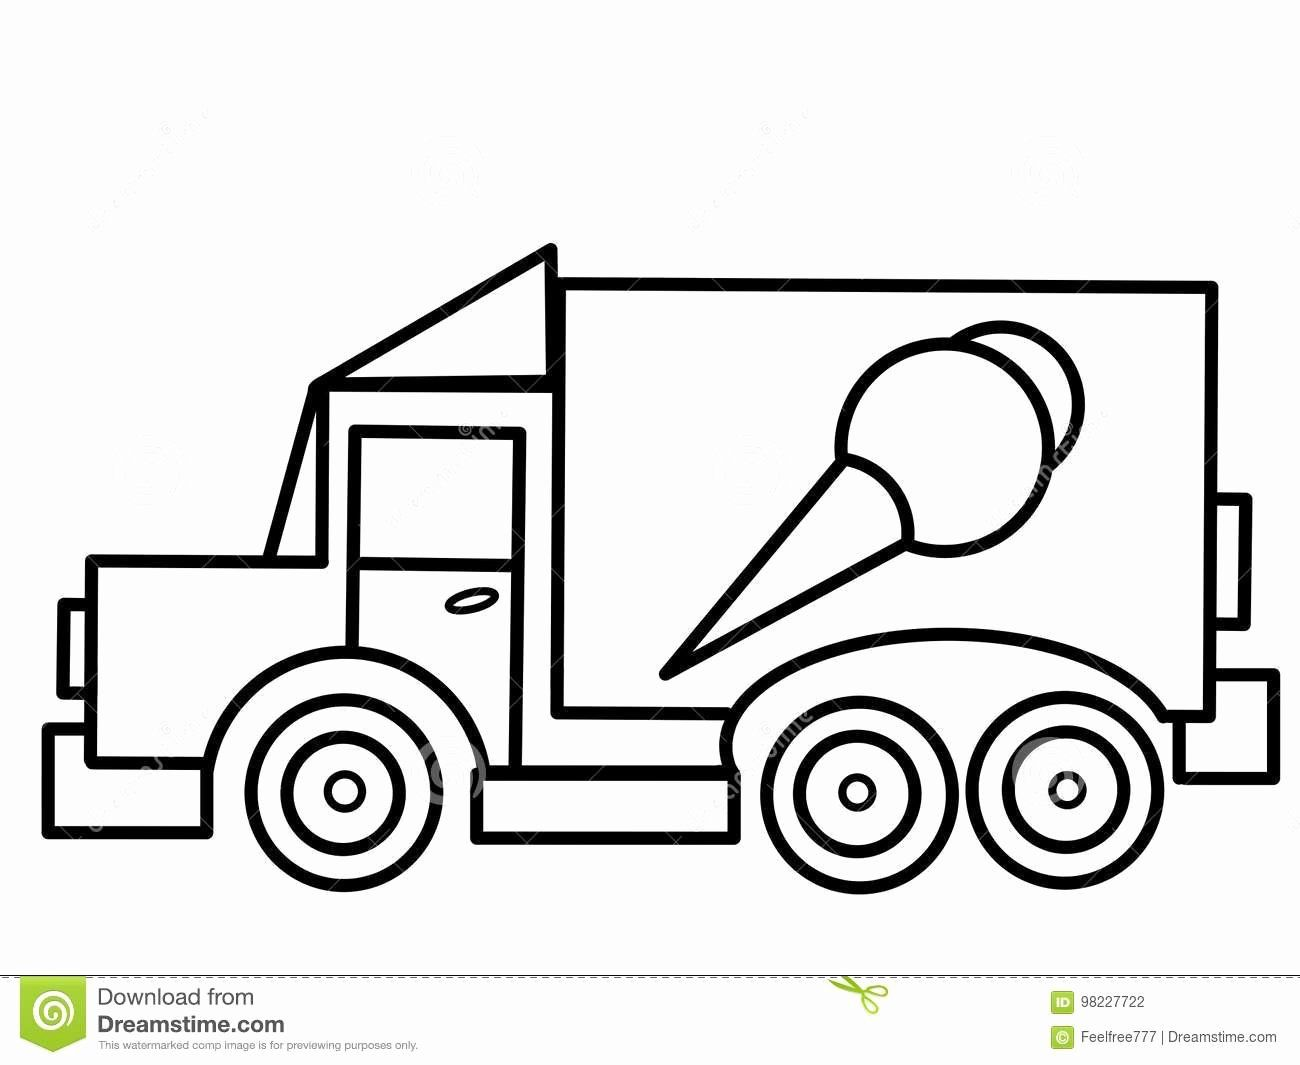 ice cream truck coloring free download to print ice cream truck coloring page in ice truck cream coloring